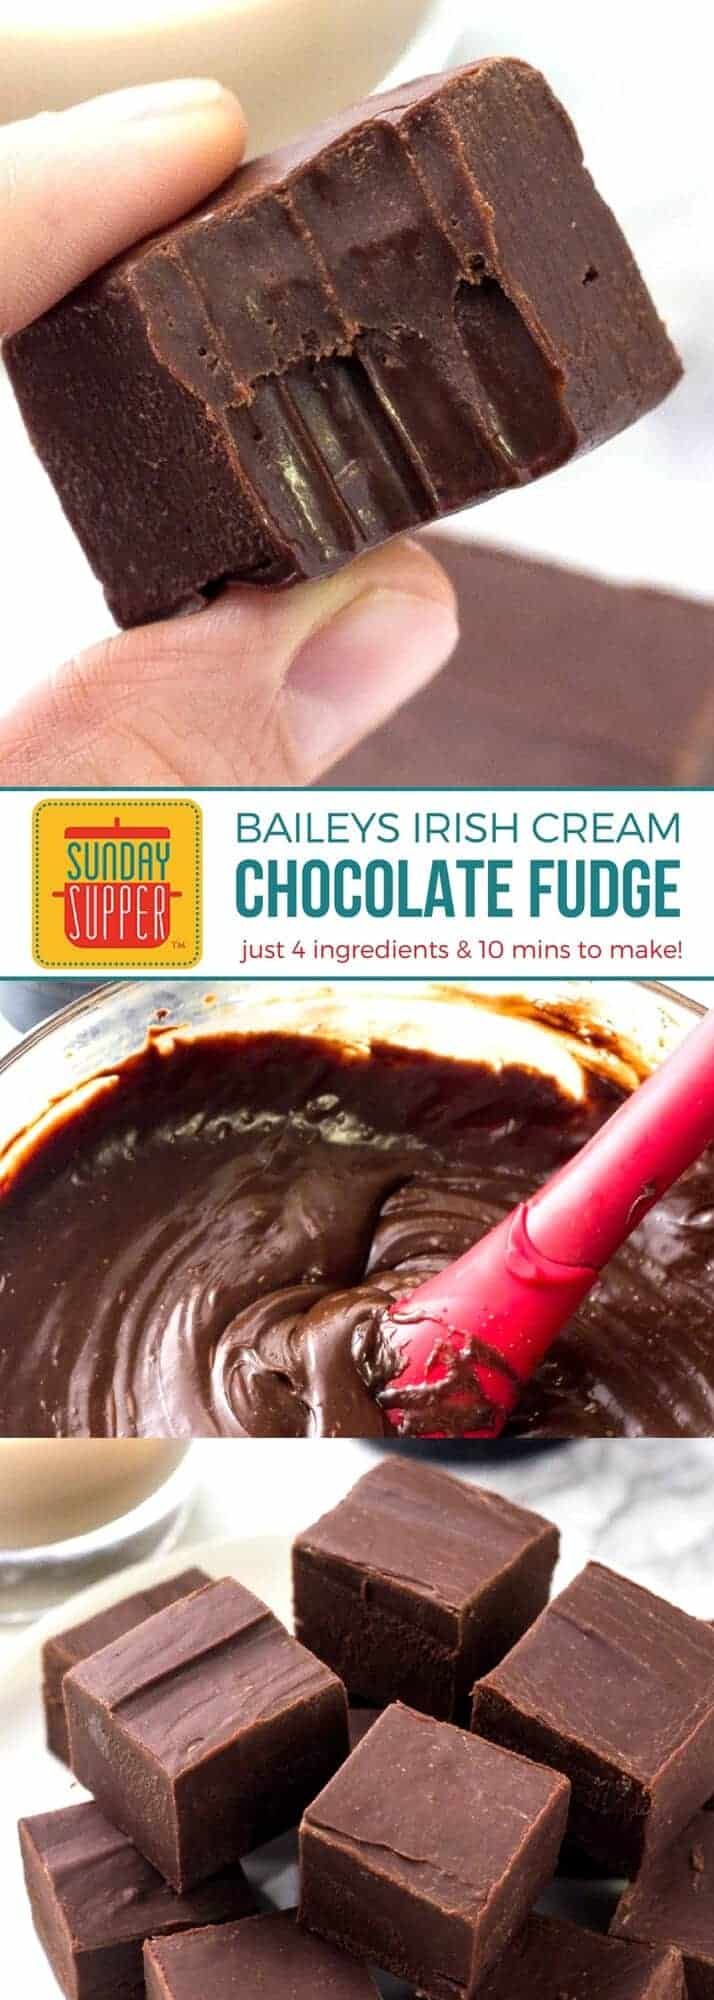 The PERFECT bite sized dessert! Baileys Fudge is smooth & creamy with a delicious hint of Irish Cream. With just 4 ingredients, this grown up chocolate fudge is super EASY to make! You will want to make this easy recipe for all your parties and game day gatherings. Perfect for gift giving too! Just package it up in a pretty box with a bow and you'll have a nice gift from the kitchen everyone will love! #SundaySupper #ChocolateFudge #BaileysIrishCream #HolidayGift #HolidayRecipes